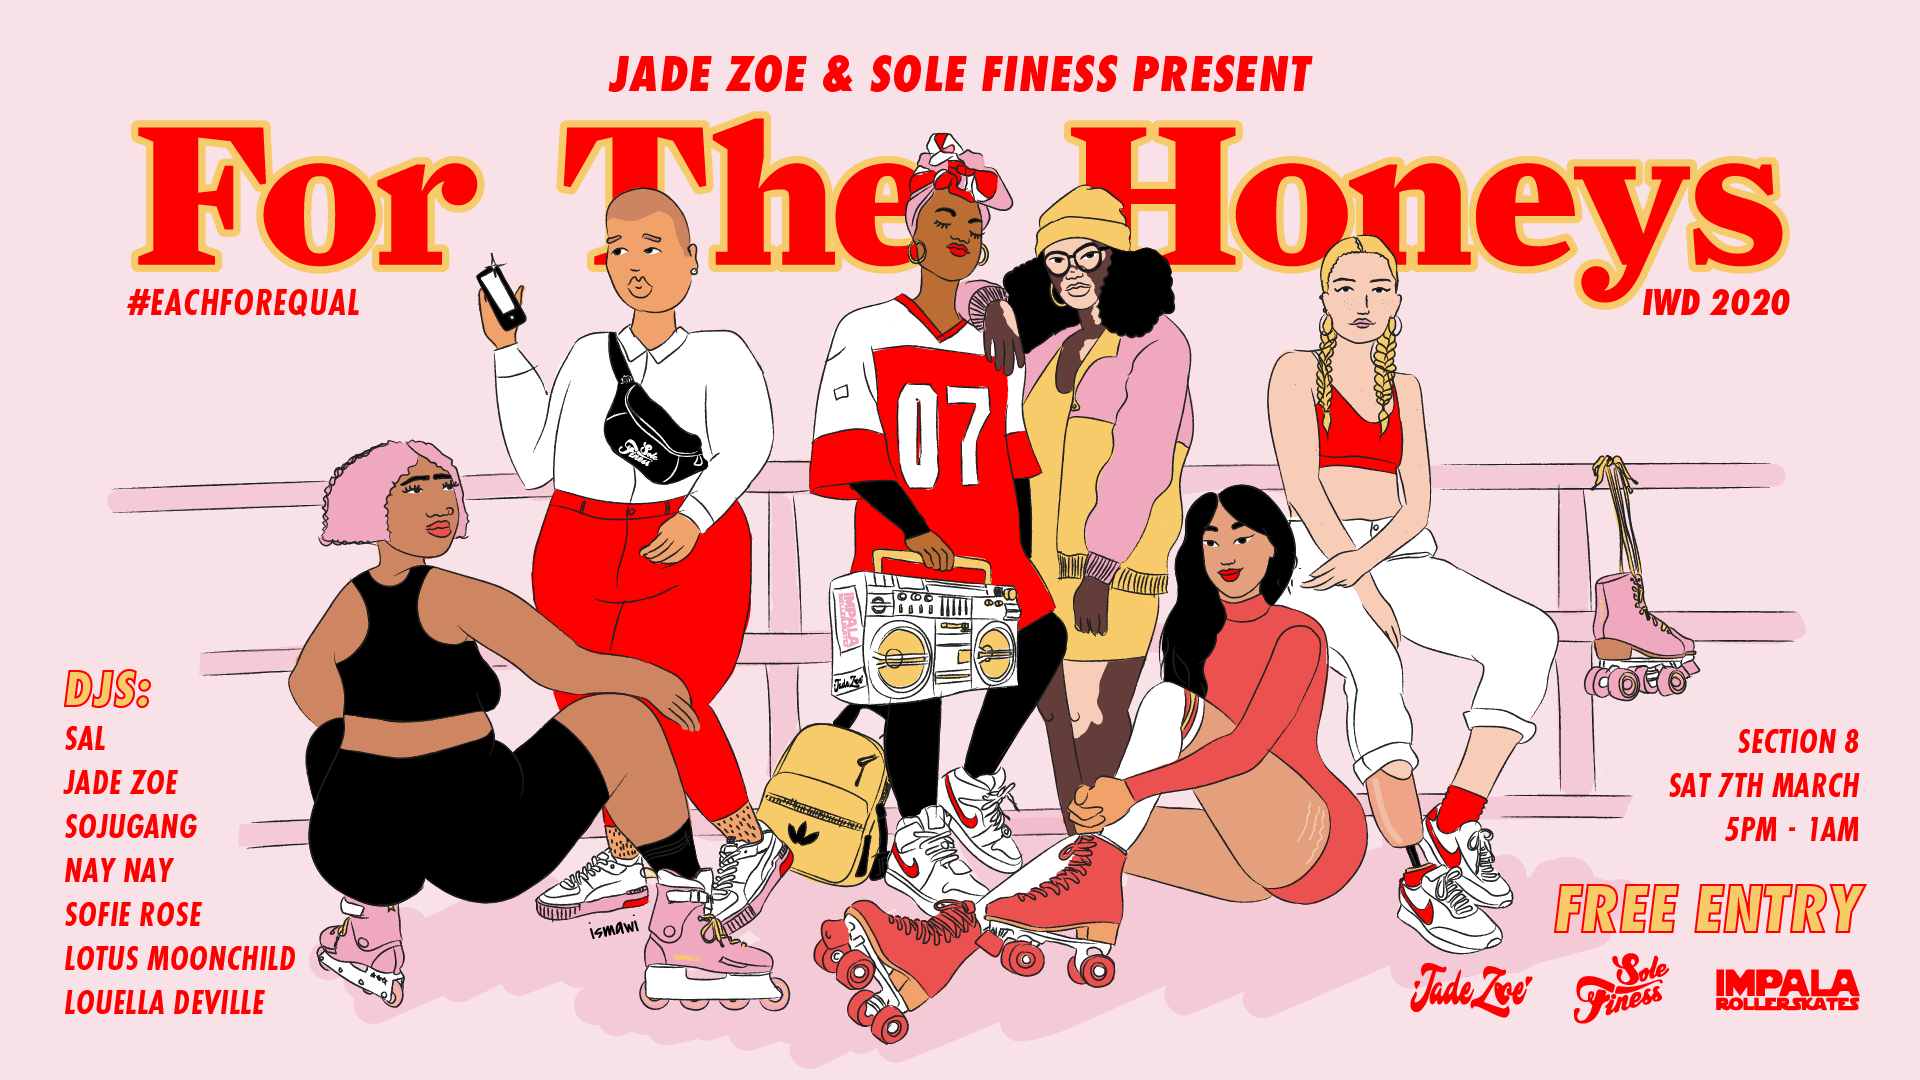 /blogs/for-the-honeys/jade-zoe-sole-finess-present-for-the-honeys-iwd2020